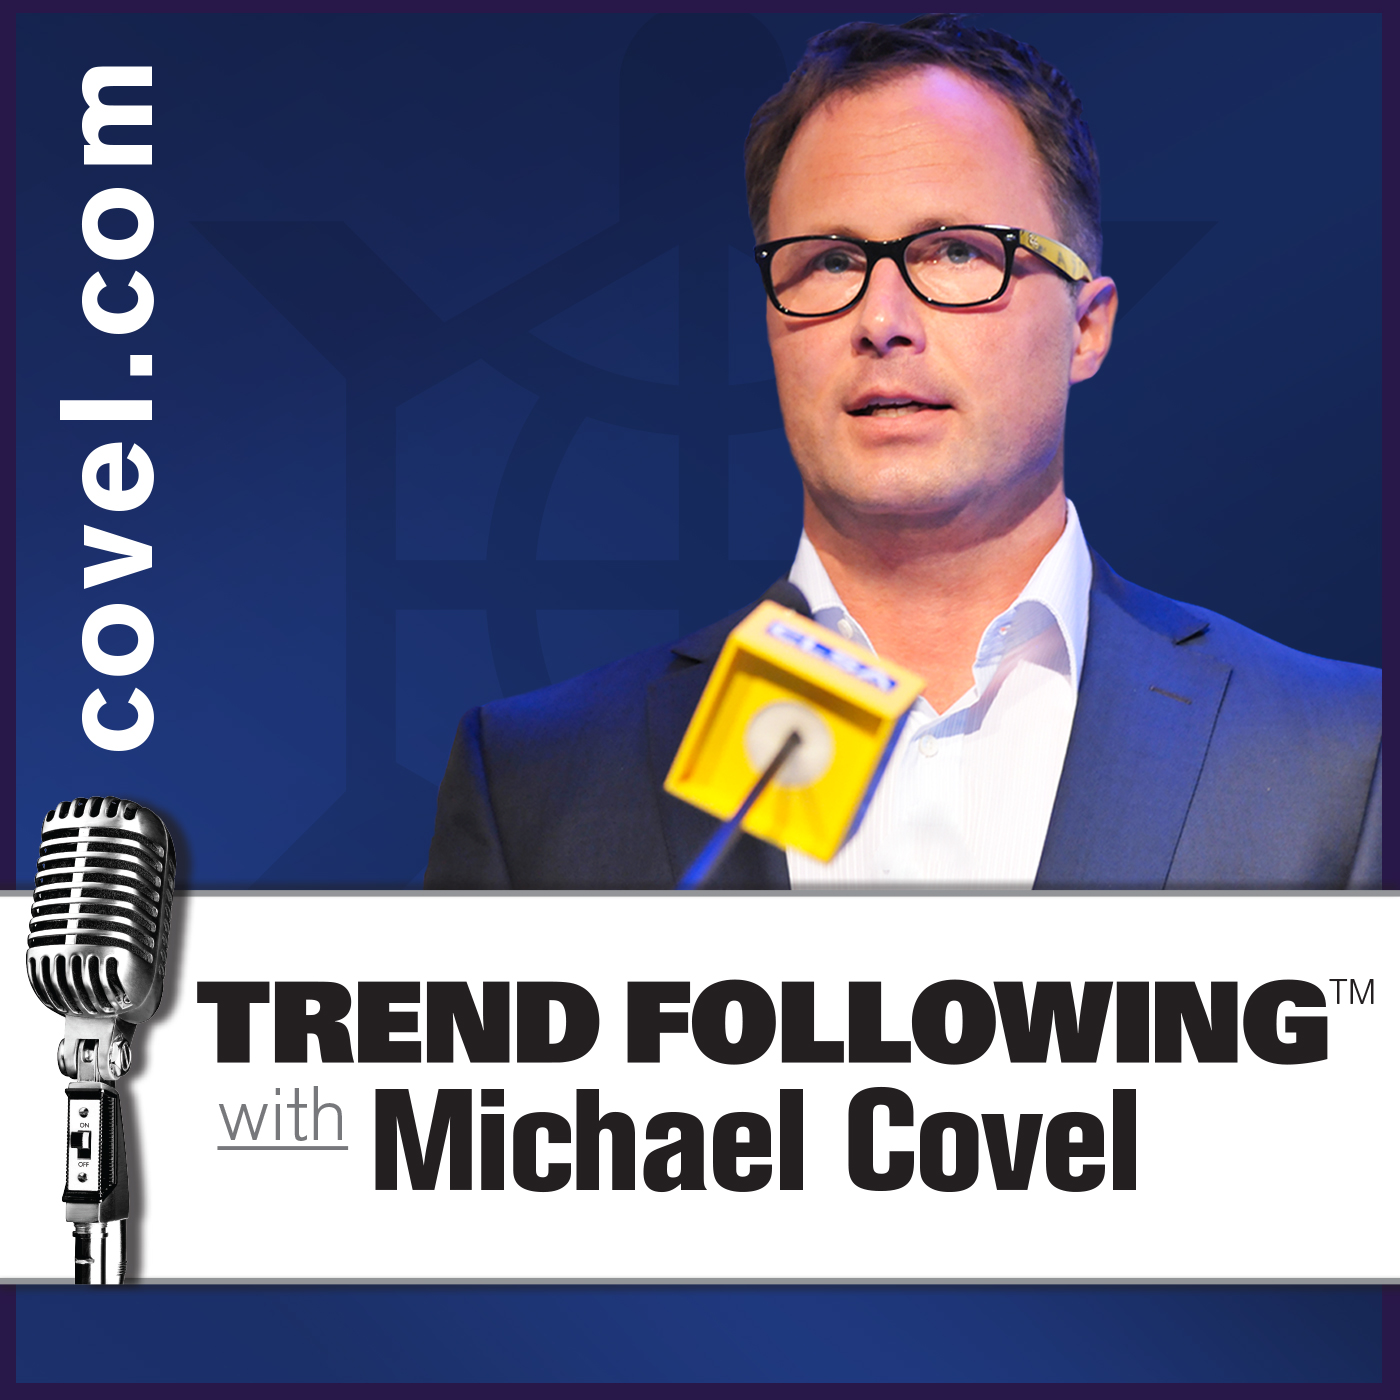 Ep. 514: Epic Behavioral Episode with Michael Covel on Trend Following Radio